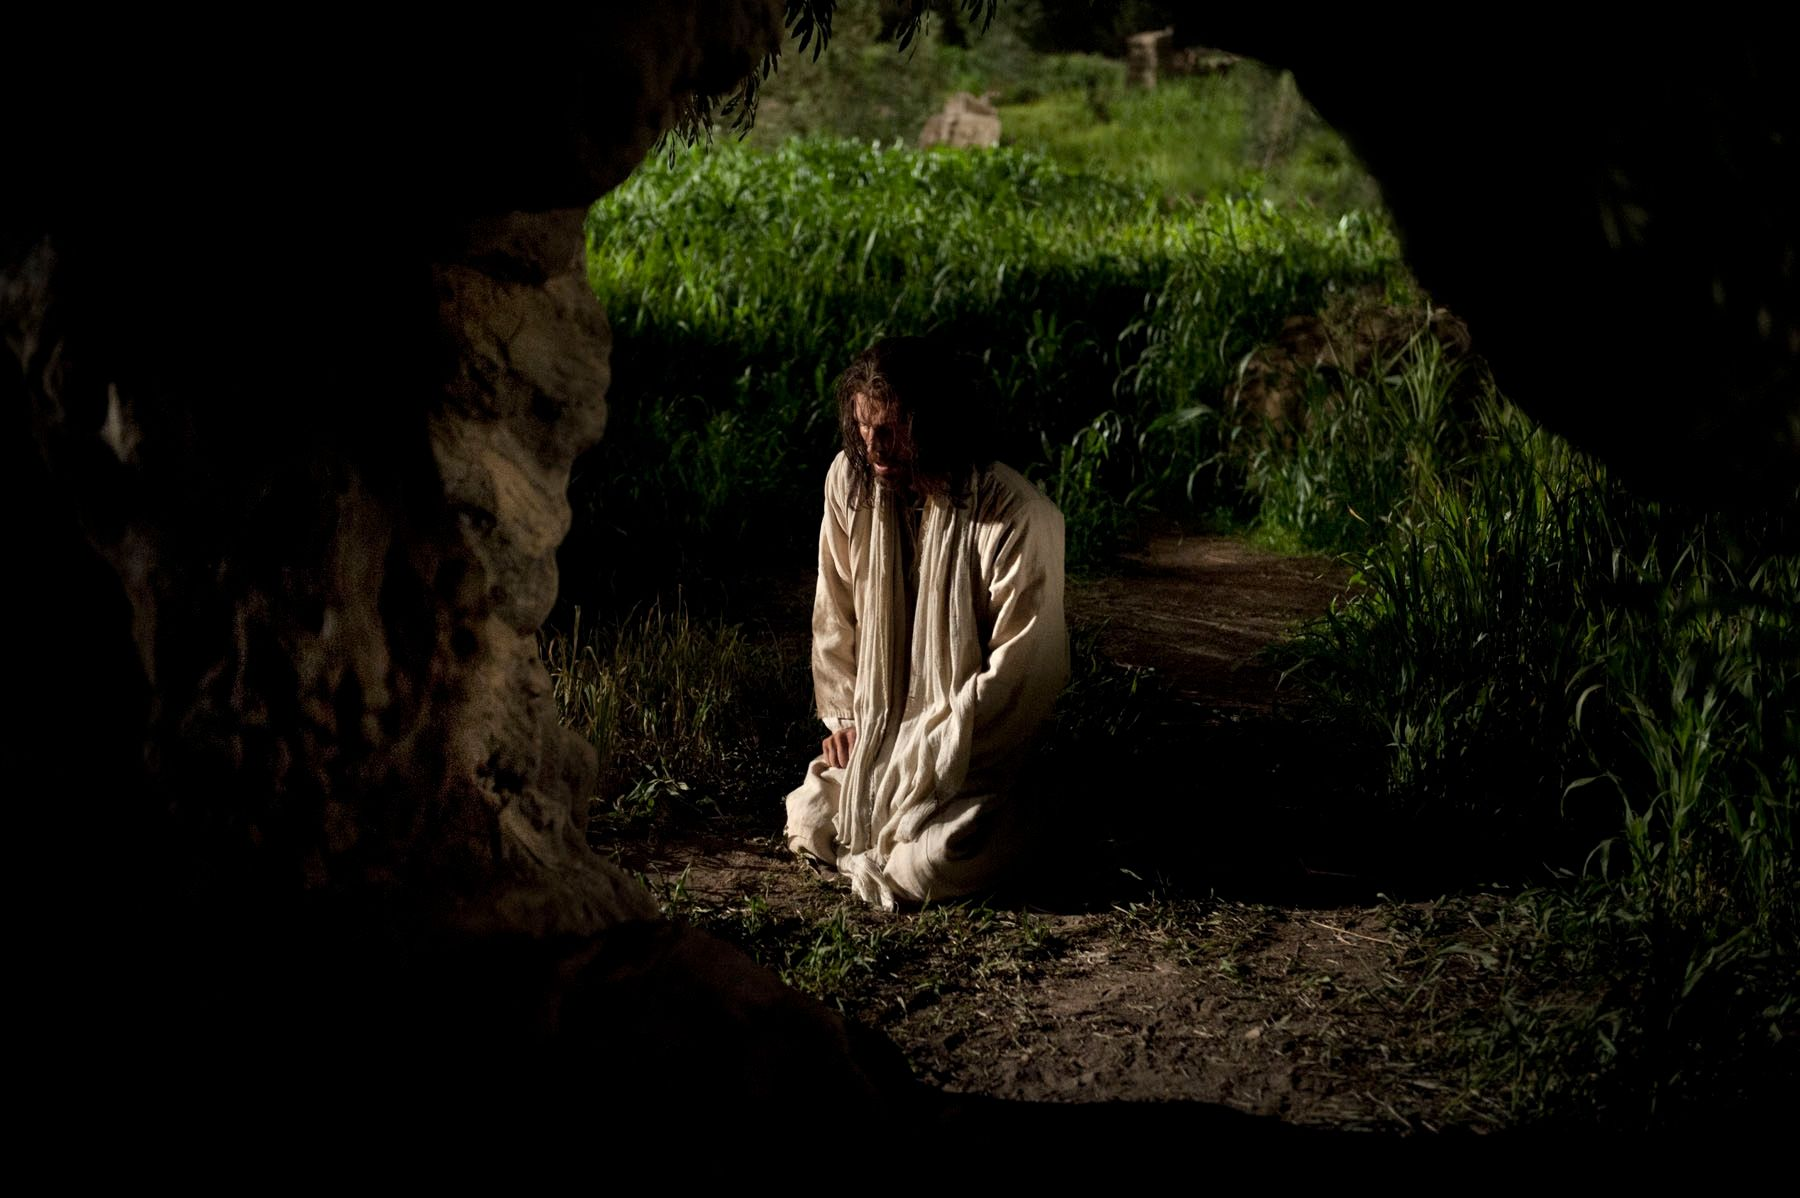 Jesus returns to the garden again to continue to pray and suffers great pain.